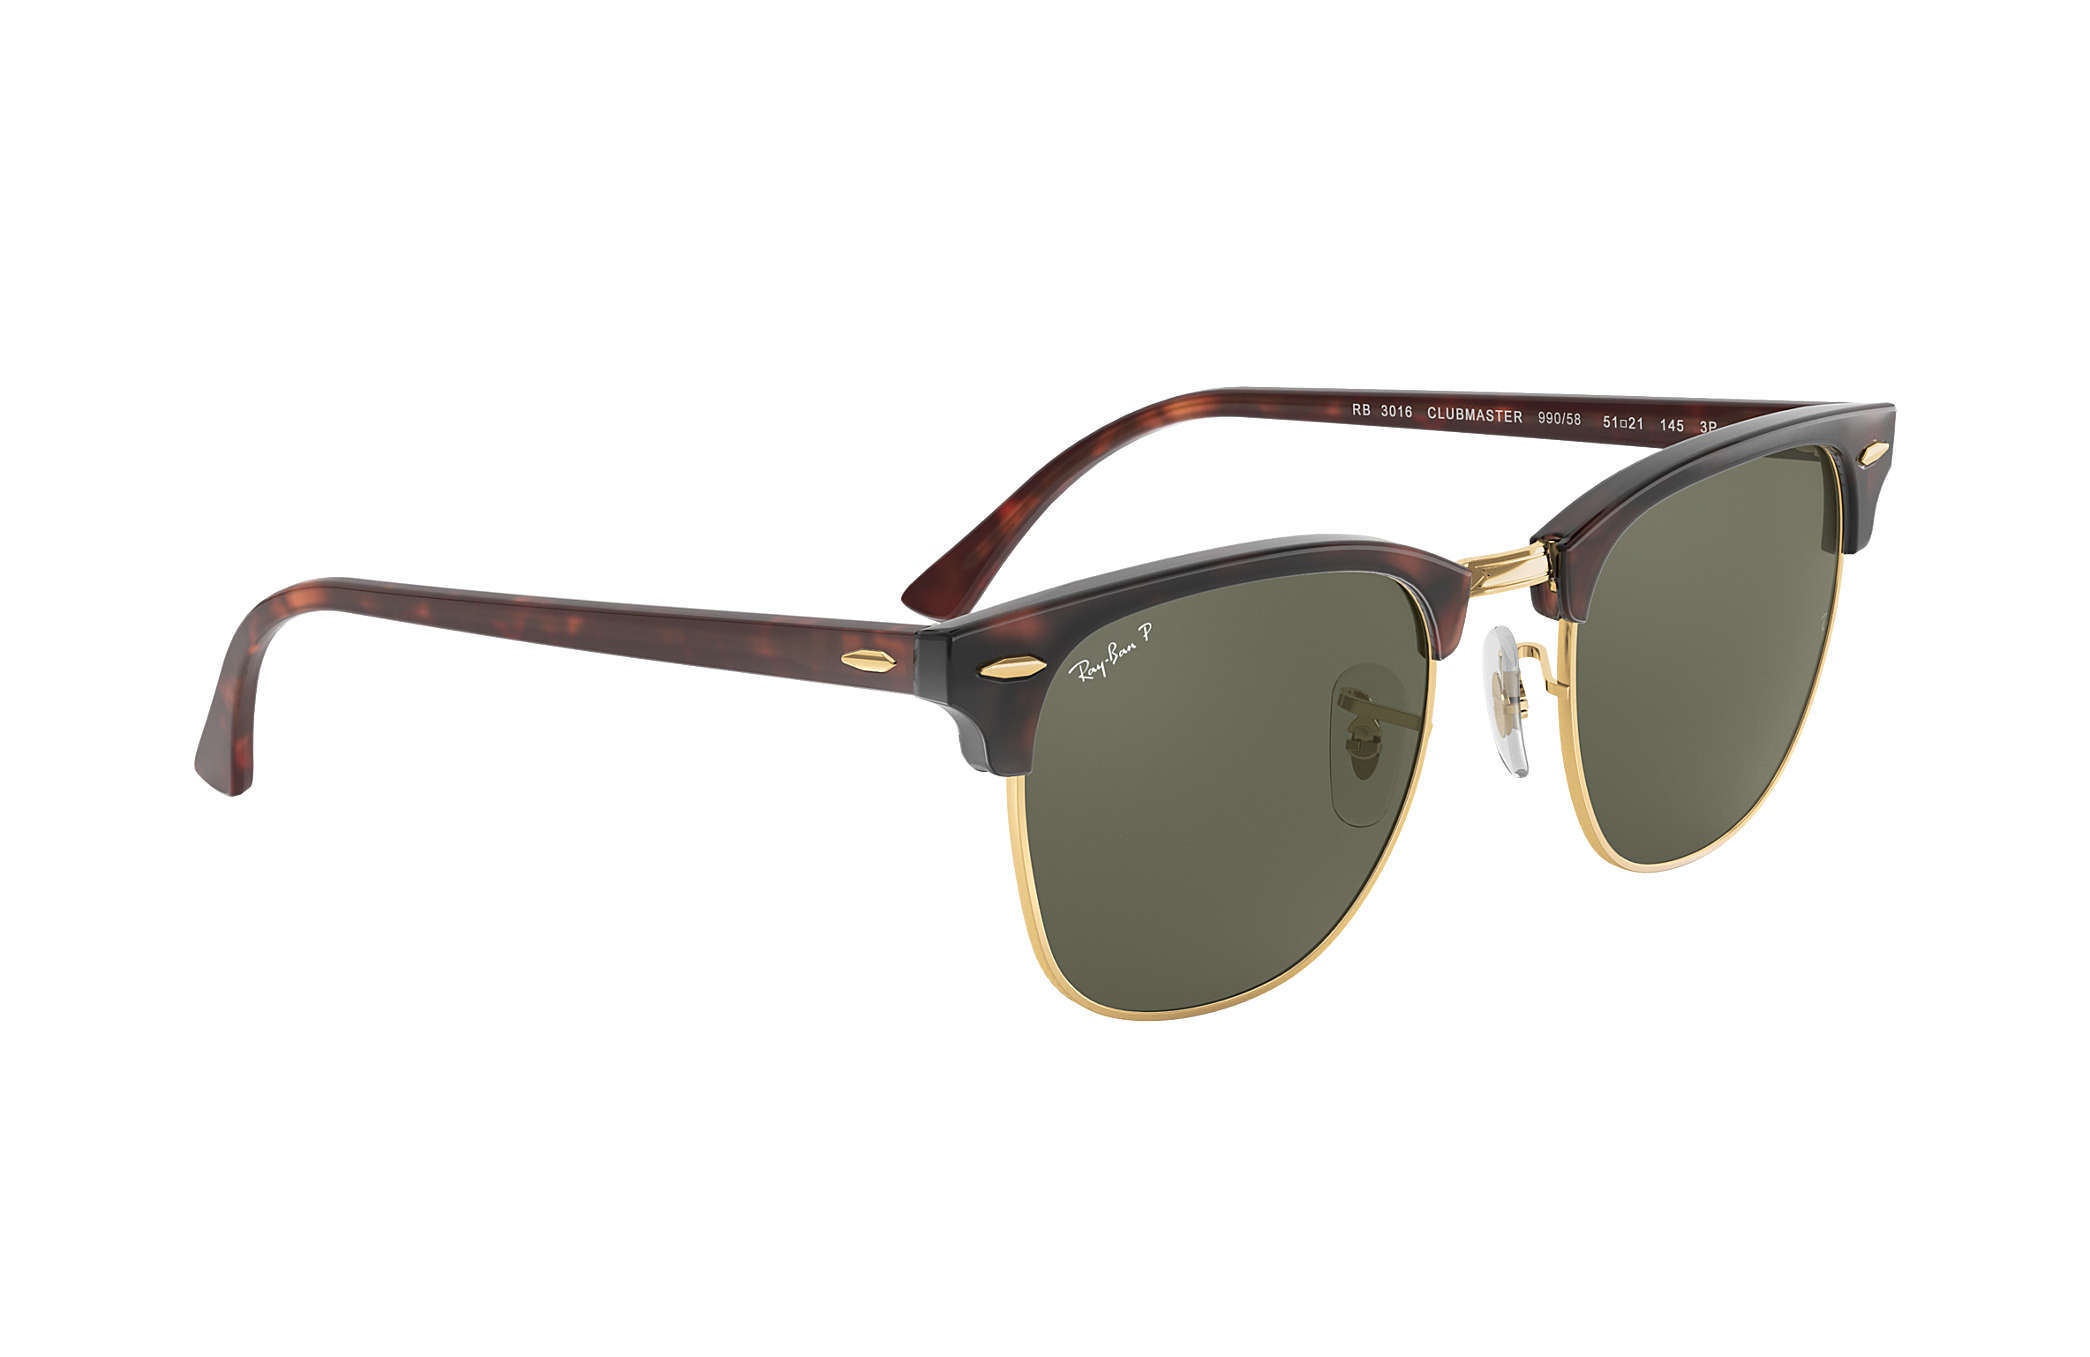 1d6a65821 Ray-Ban Clubmaster Classic RB3016 Tortoise - Acetate - Green Lenses ...